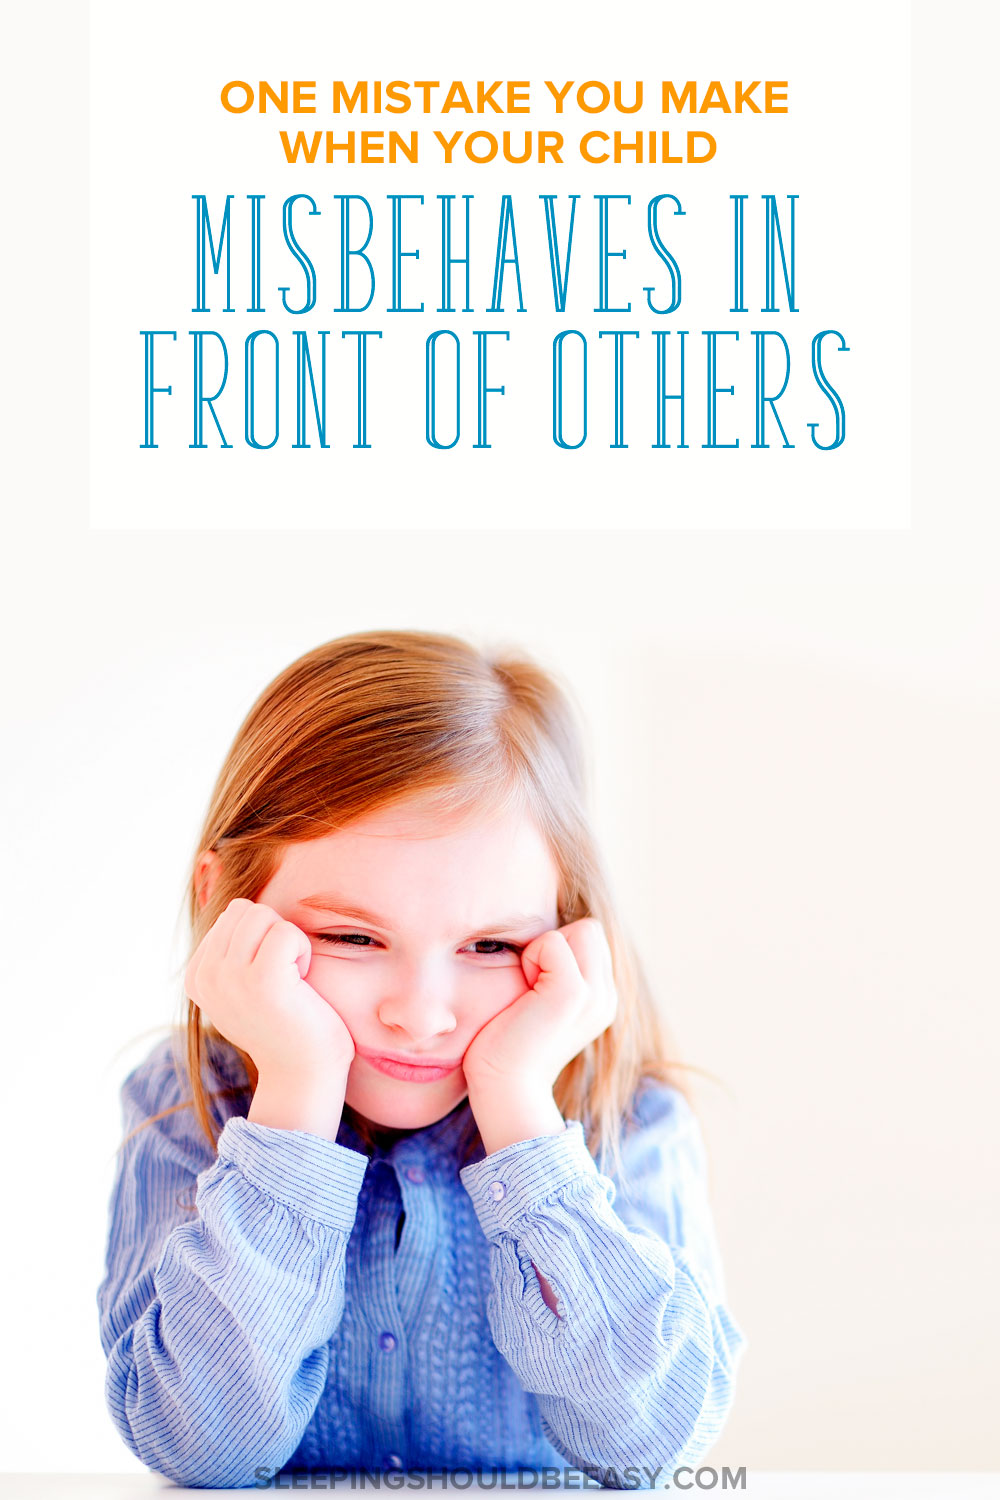 Do you know what to do when your child misbehaves in front of others? You may be making a mistake you don't even know you're making. See if you're guilty of it and what you can do instead.